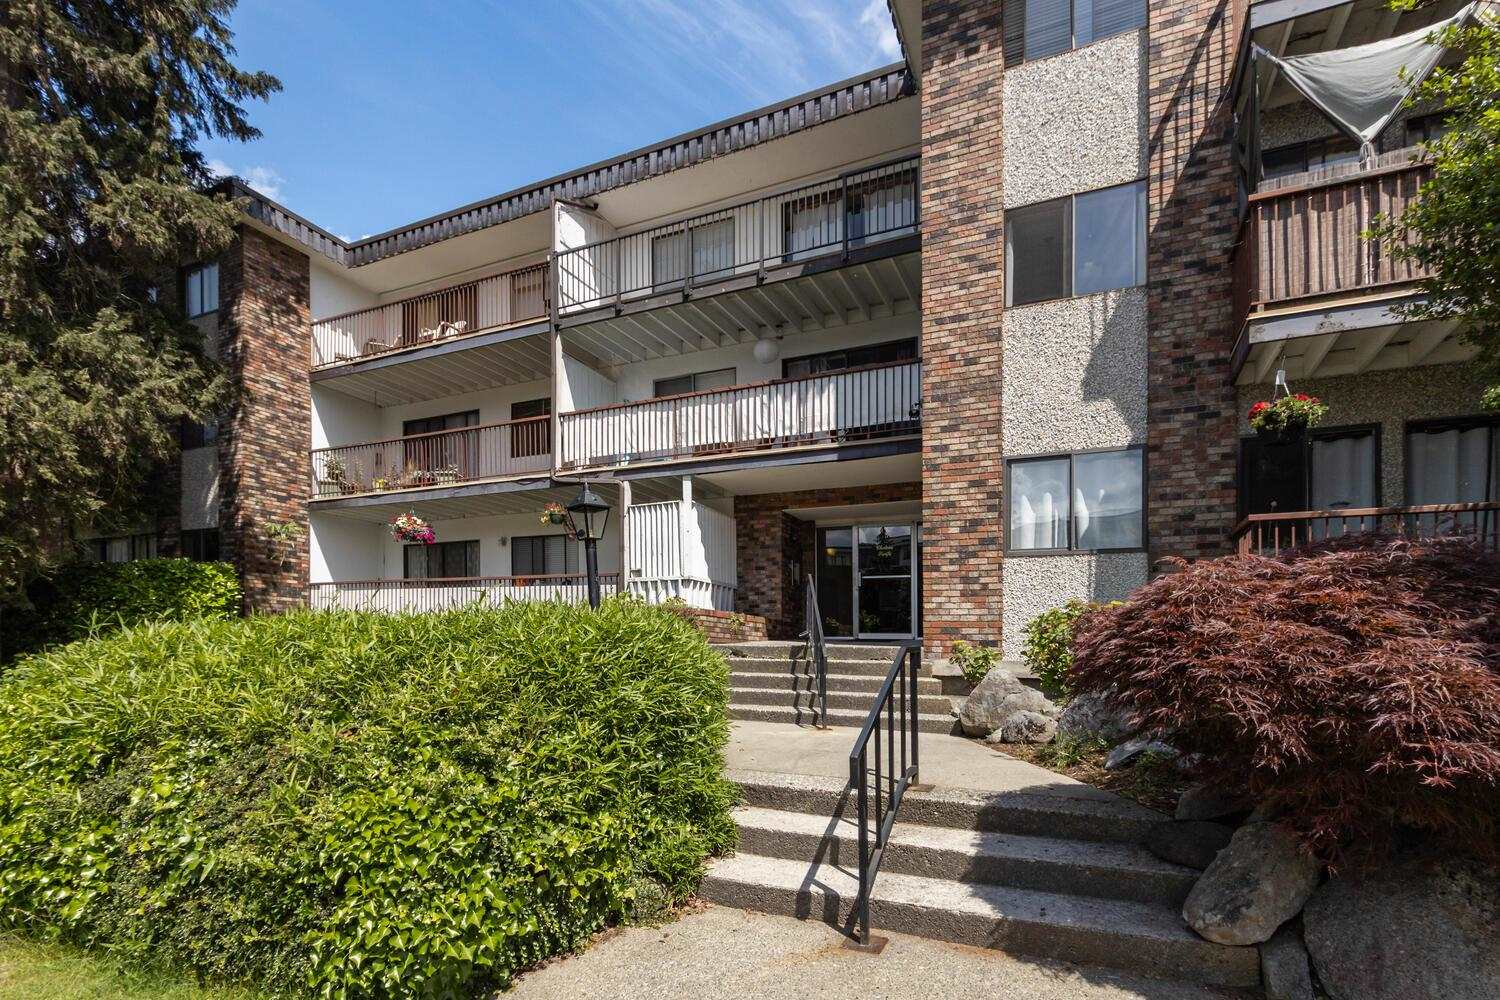 207 160 E 19TH STREET - Central Lonsdale Apartment/Condo for sale, 1 Bedroom (R2595529) - #1